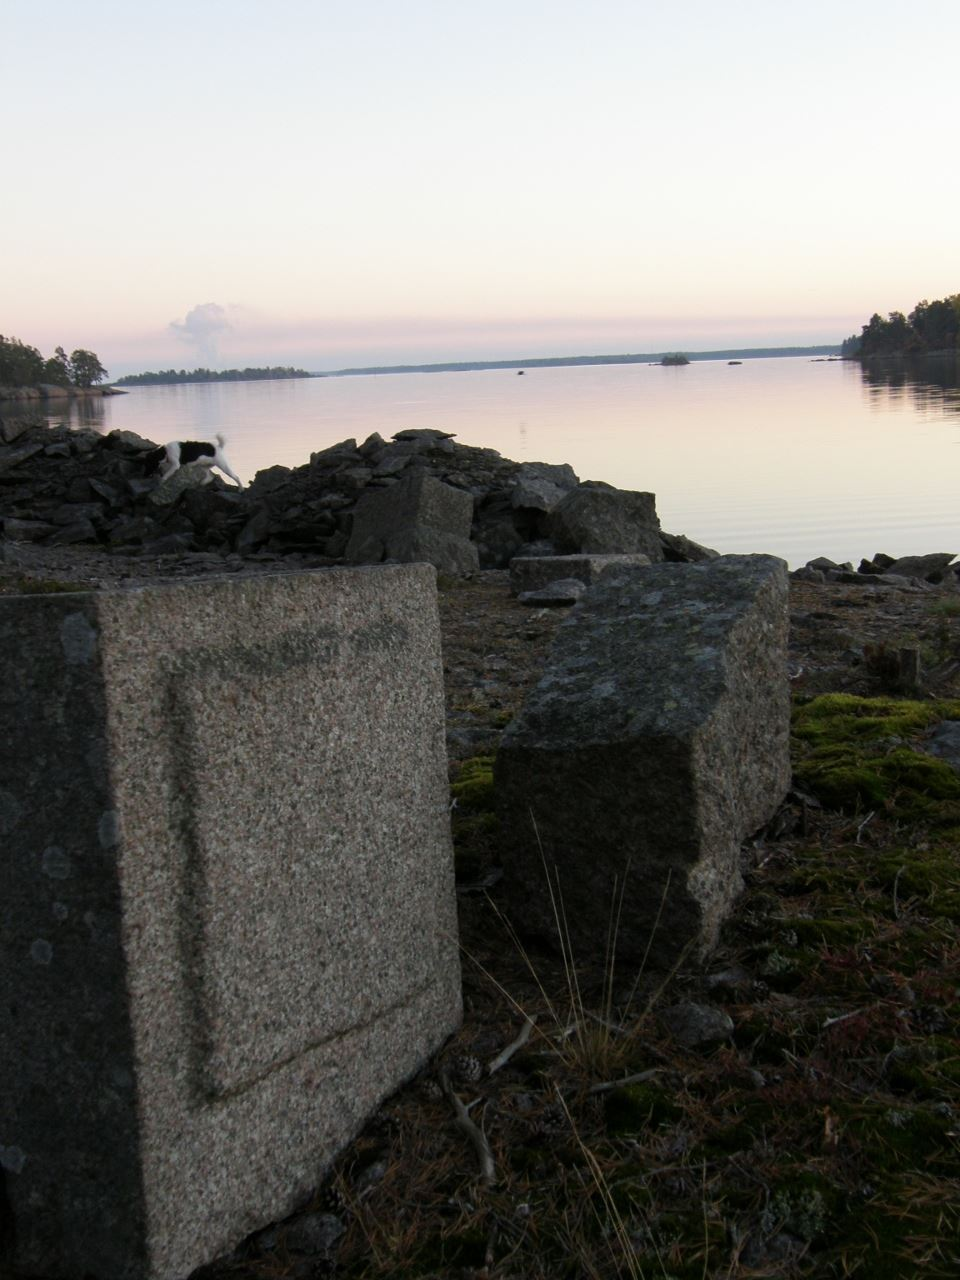 The Stonemason Museums in Vånevik and Näset